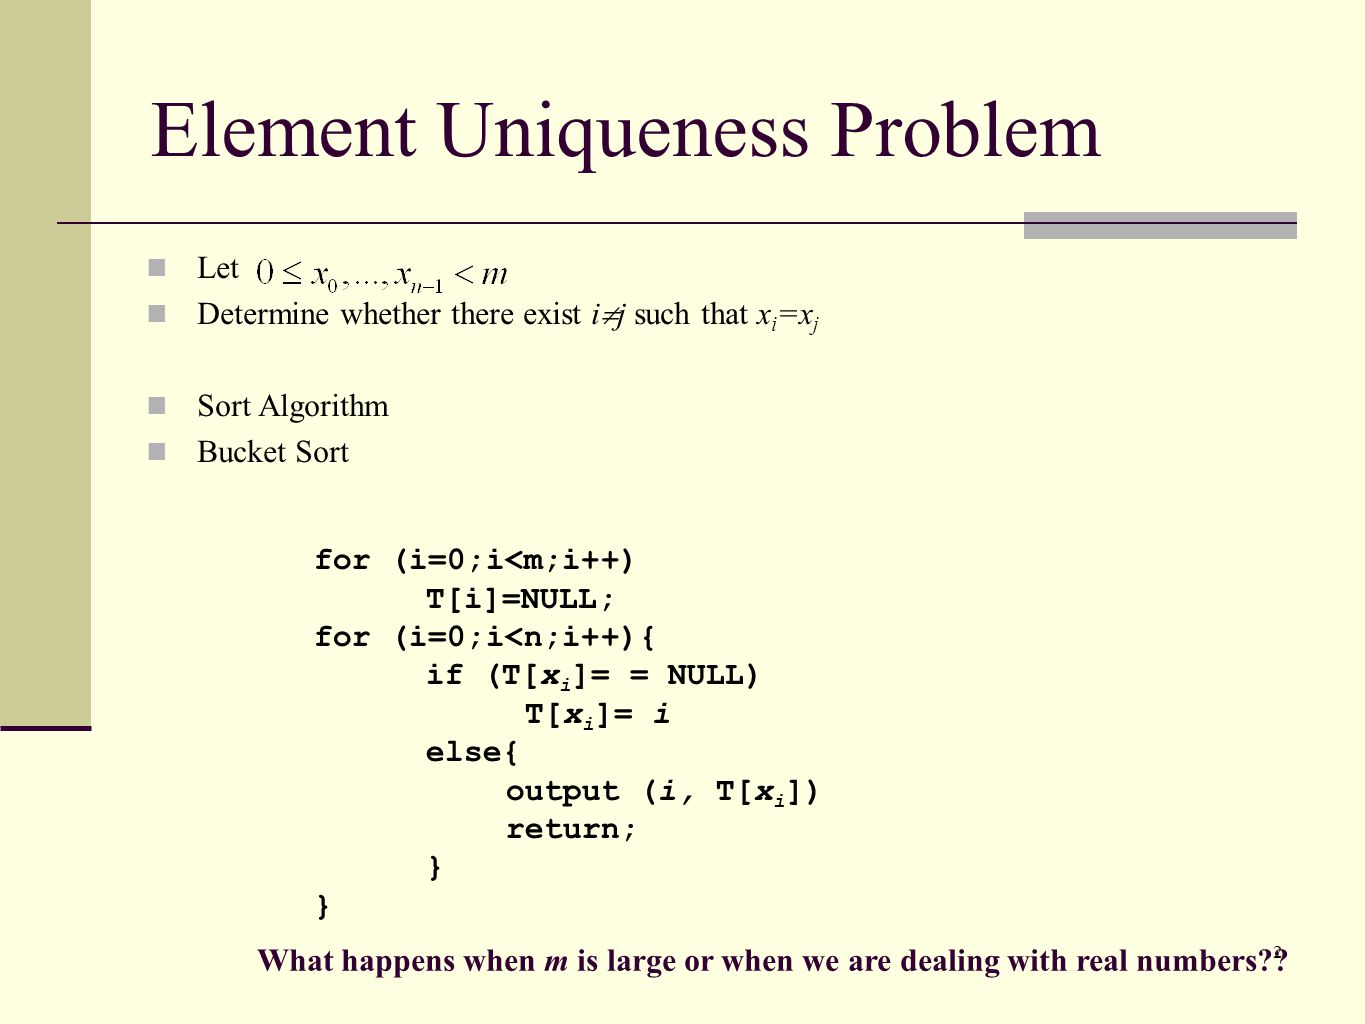 Element Uniqueness Problem